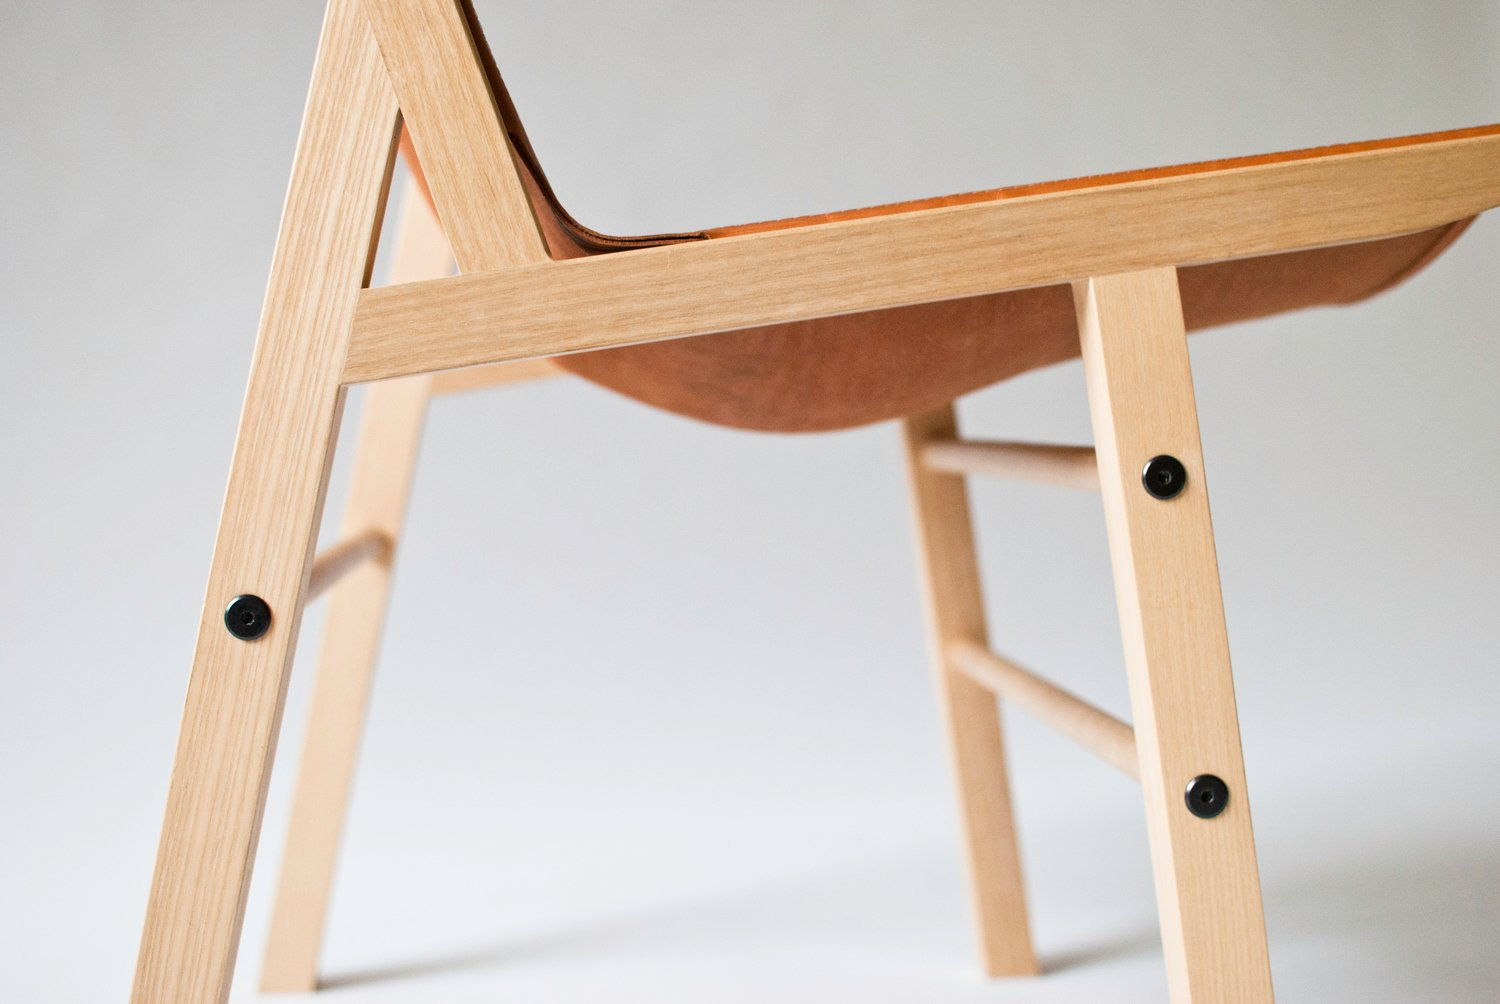 No. 3 Chair by Studio Gorm